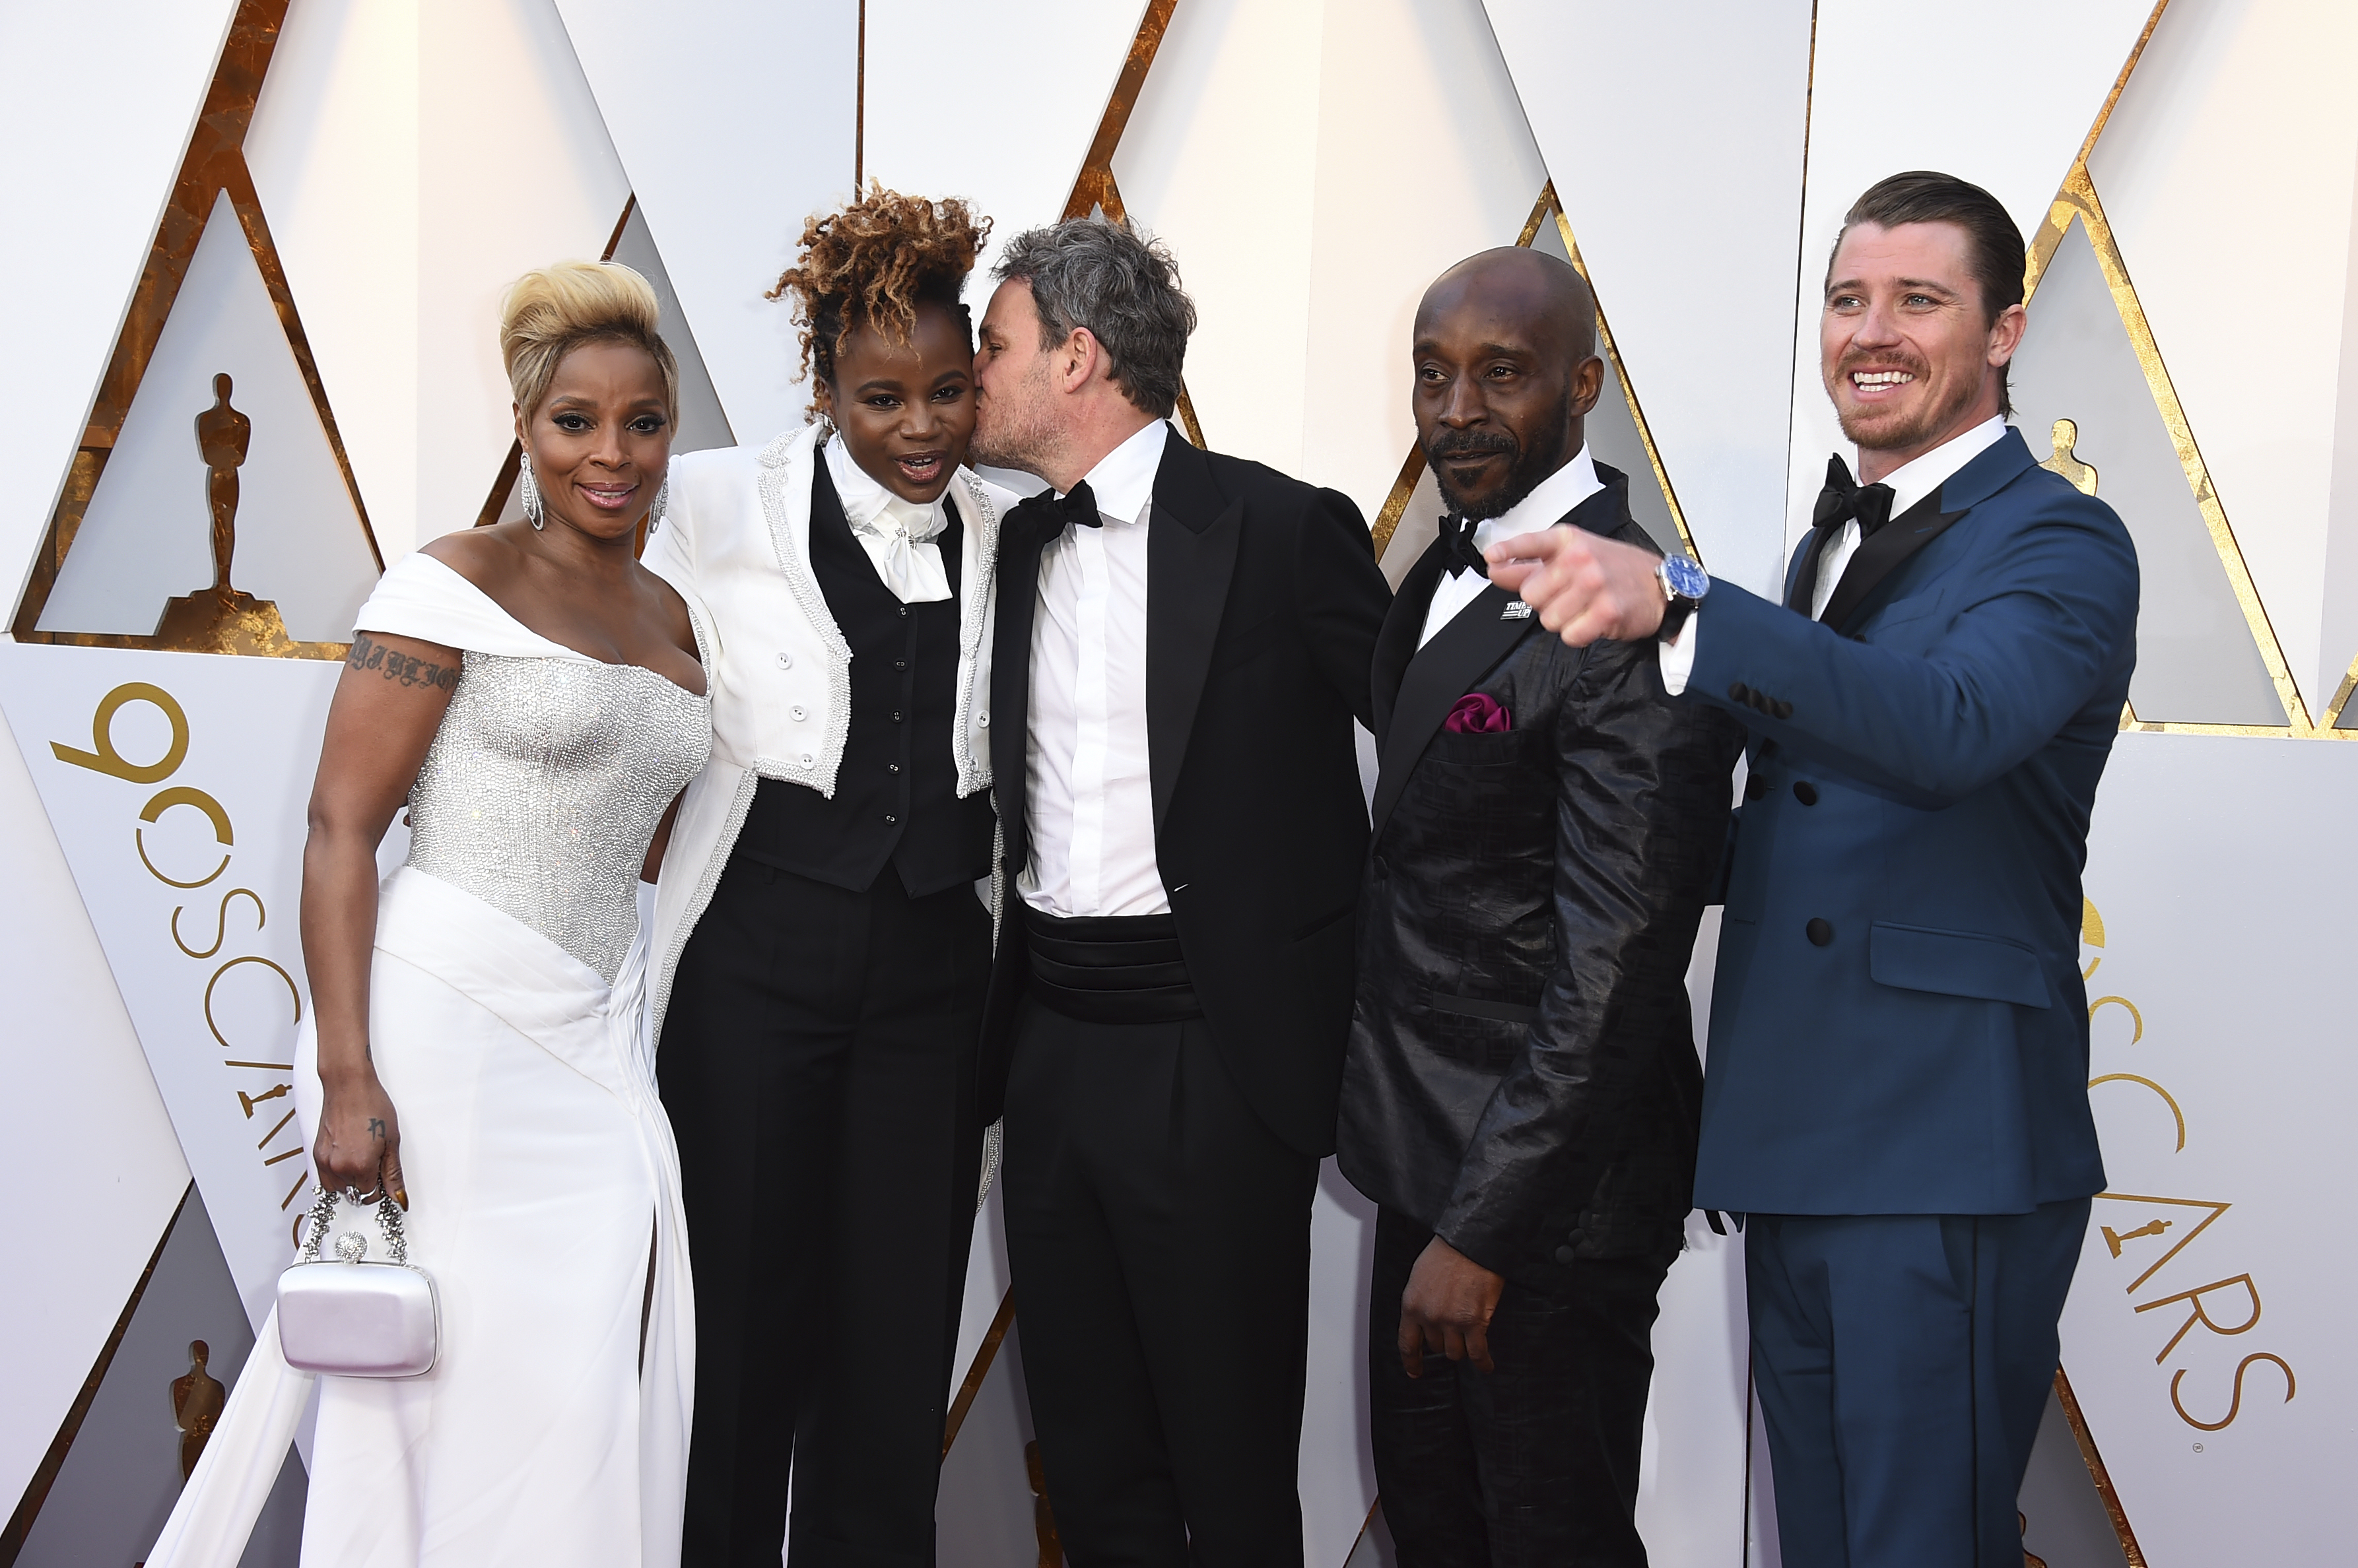 <div class='meta'><div class='origin-logo' data-origin='none'></div><span class='caption-text' data-credit='Jordan Strauss/Invision/AP'>''Mudbound'' cast and creative team Mary J. Blige, from left, Dee Rees, Jason Clarke, Rob Morgan, and Garrett Hedlund arrive at the Oscars.</span></div>